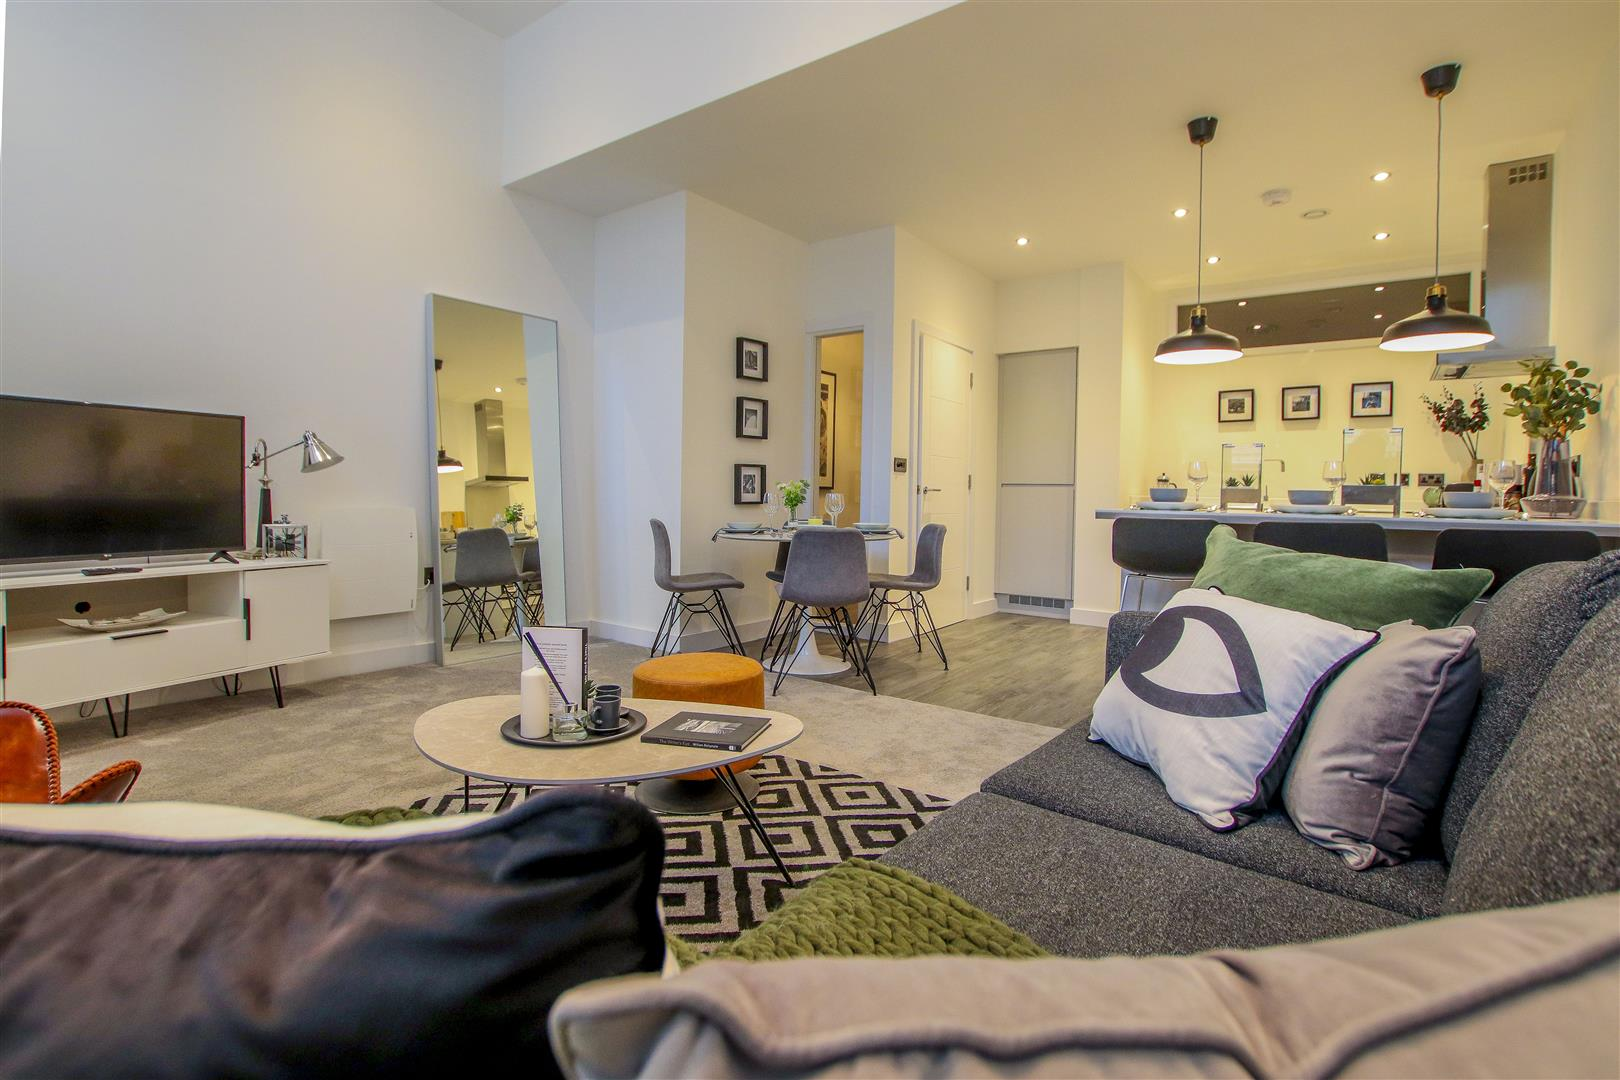 2 Bedroom Apartment For Sale - 27.JPG